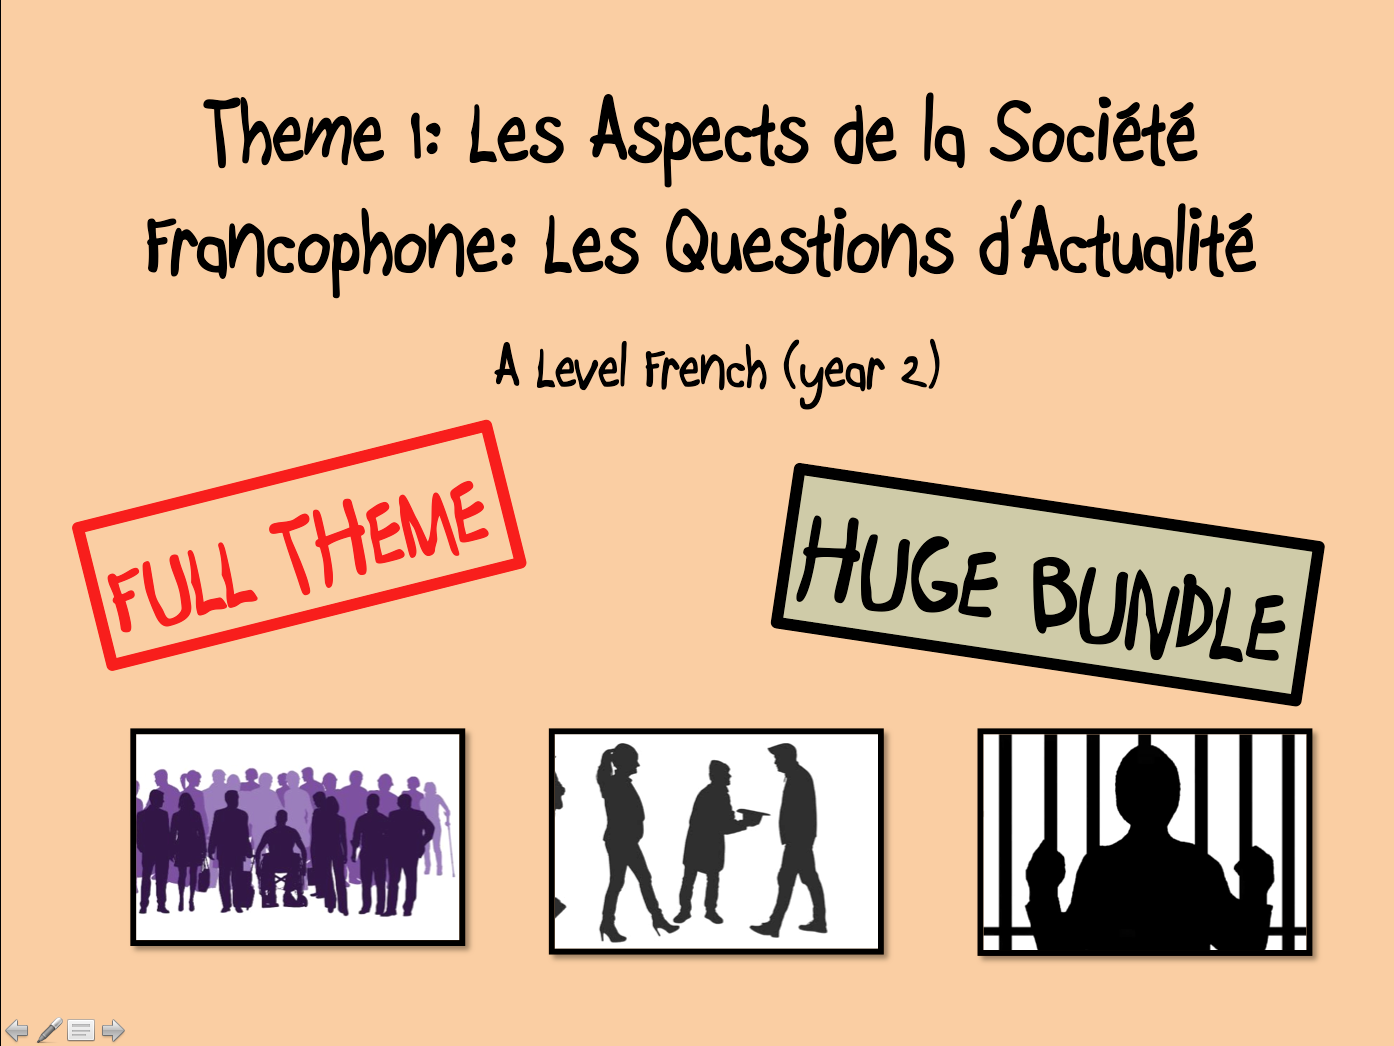 Les Questions d'Actualité- FULL THEME- A LEVEL FRENCH (Year 2)